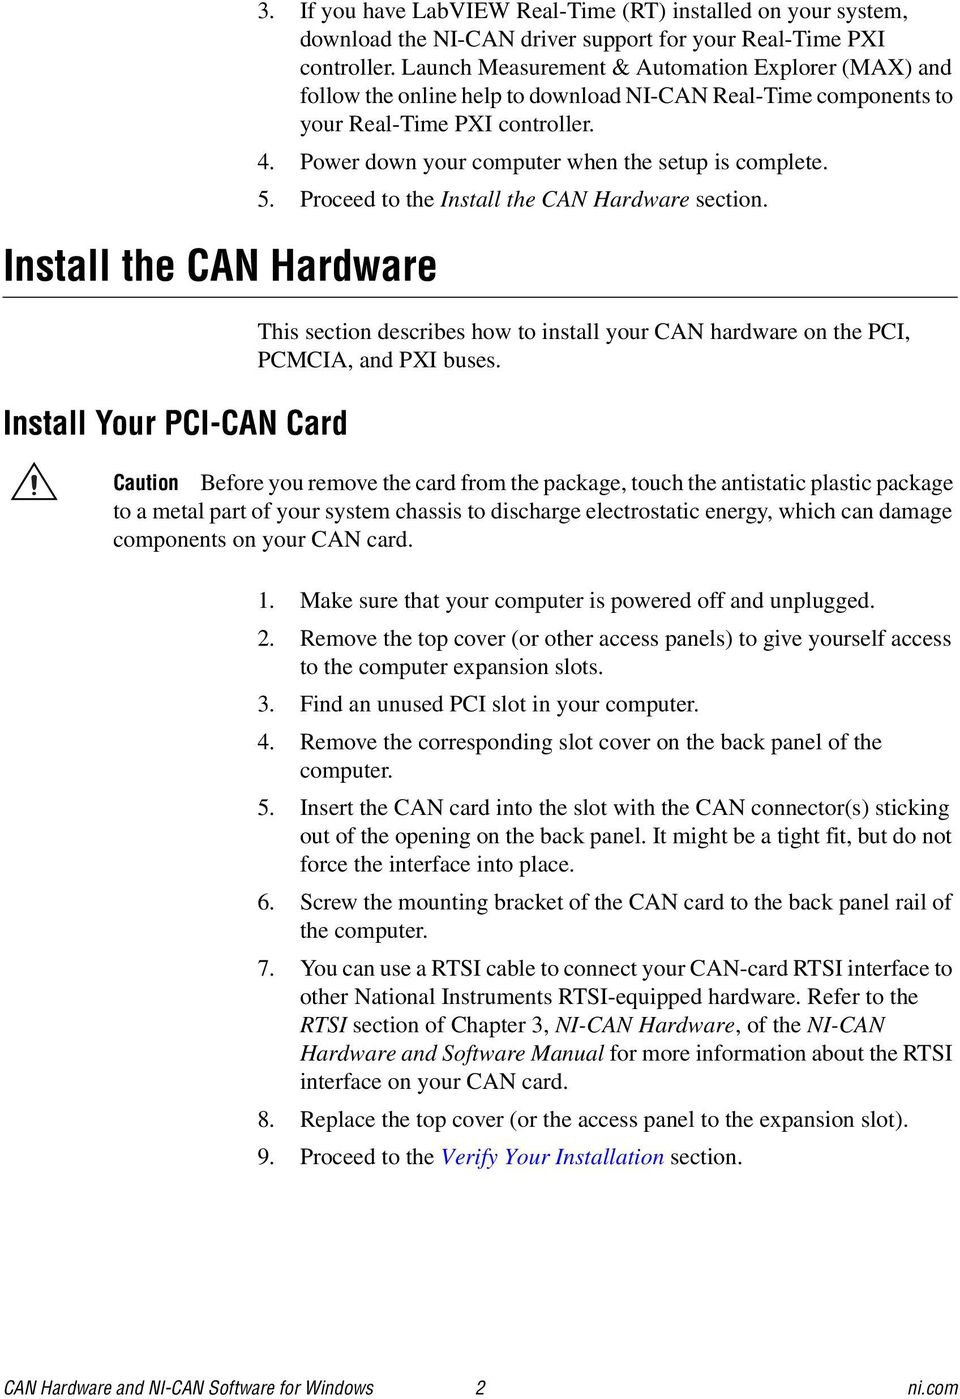 Power down your computer when the setup is complete. 5. Proceed to the Install the CAN Hardware section. This section describes how to install your CAN hardware on the PCI, PCMCIA, and PXI buses.